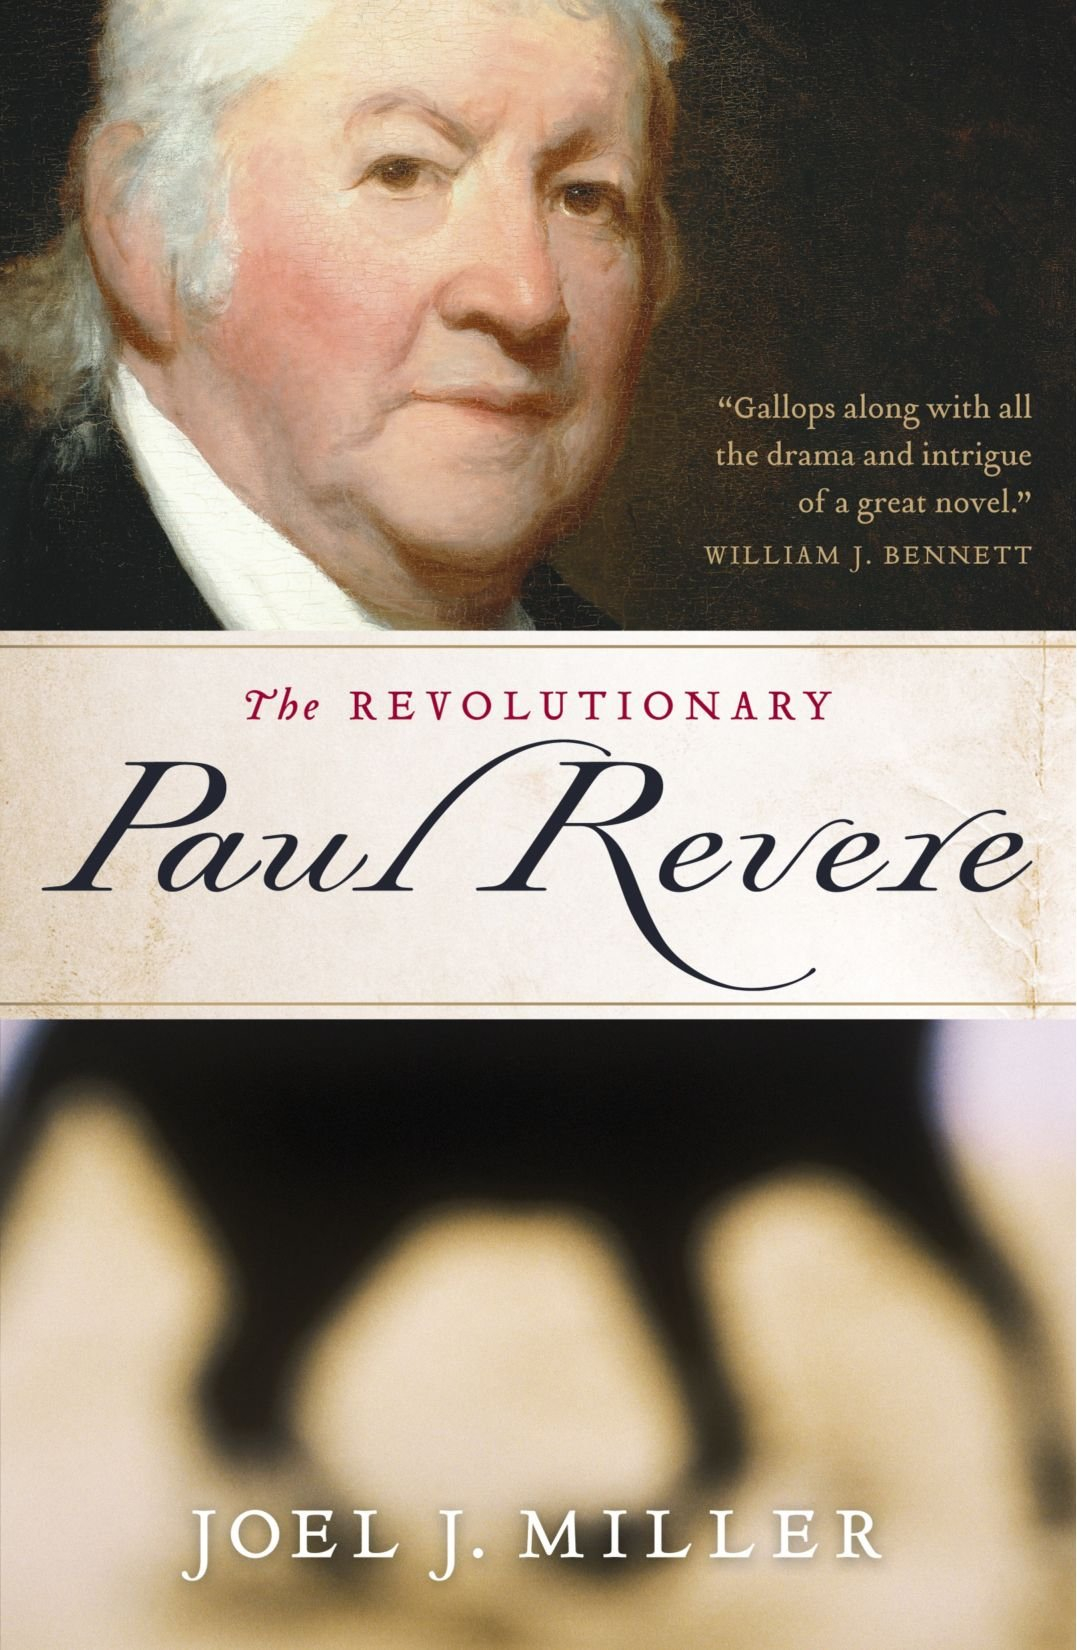 com the revolutionary paul revere joel  com the revolutionary paul revere 9781595550743 joel miller books